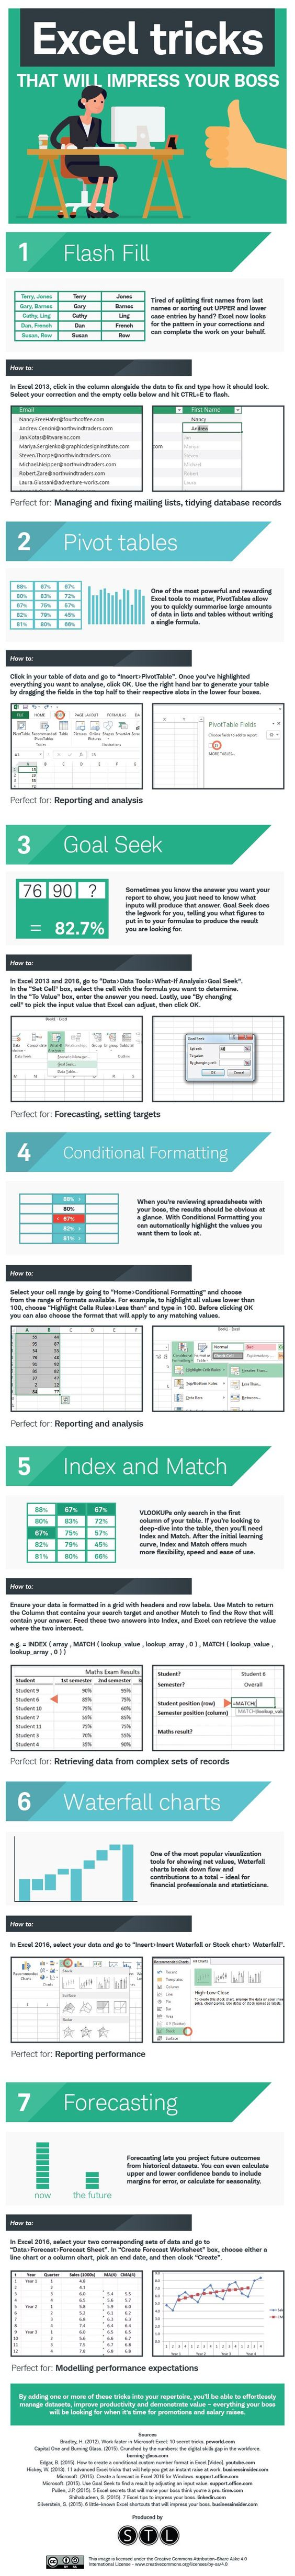 These Excel tricks will save you time and impress your boss - #infographic